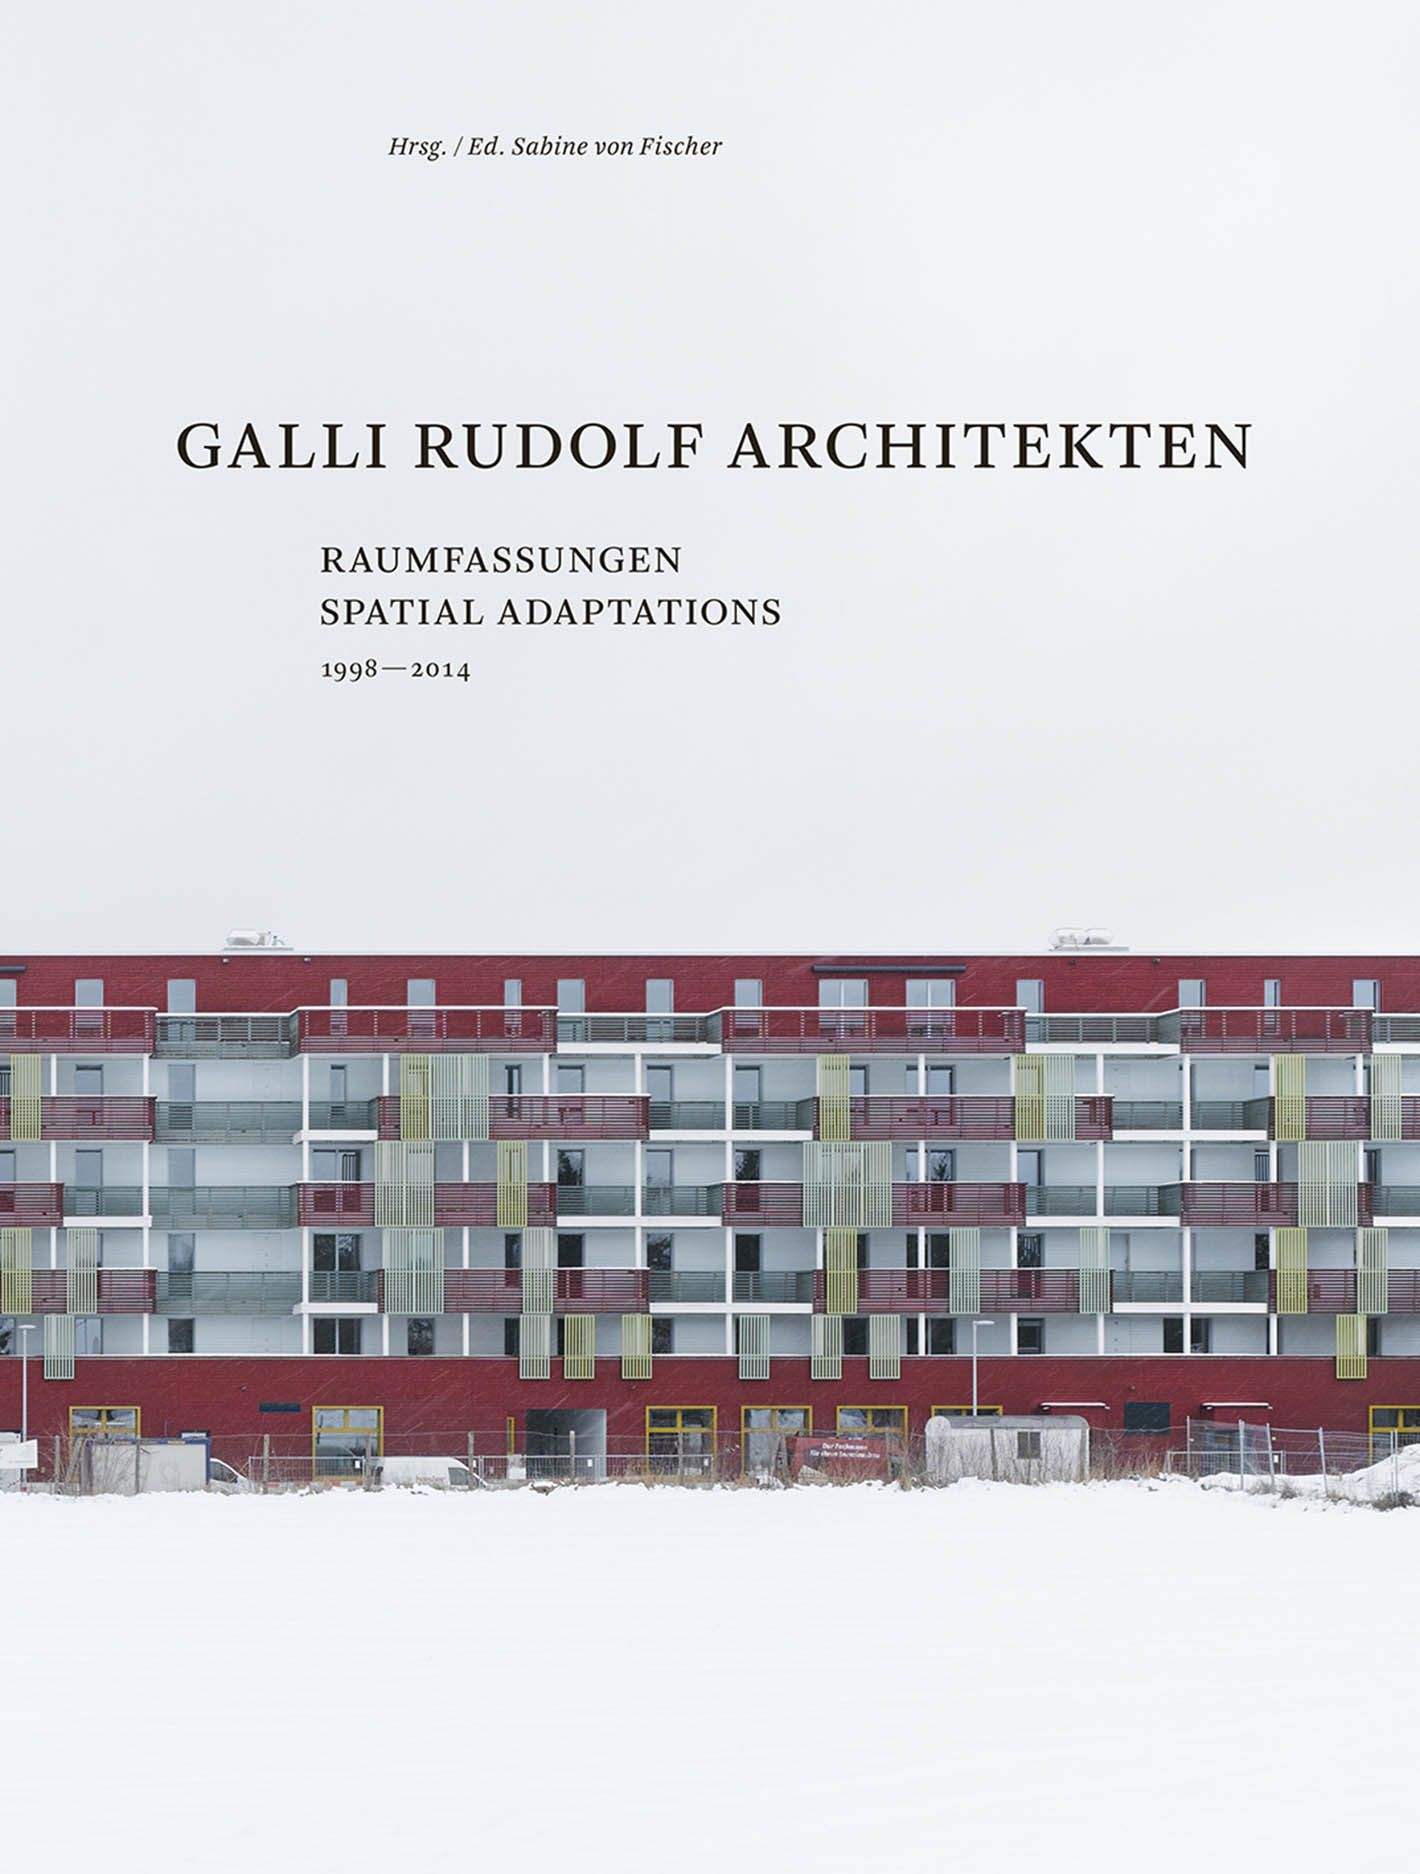 Galli Rudolf Architekten 1998-2014